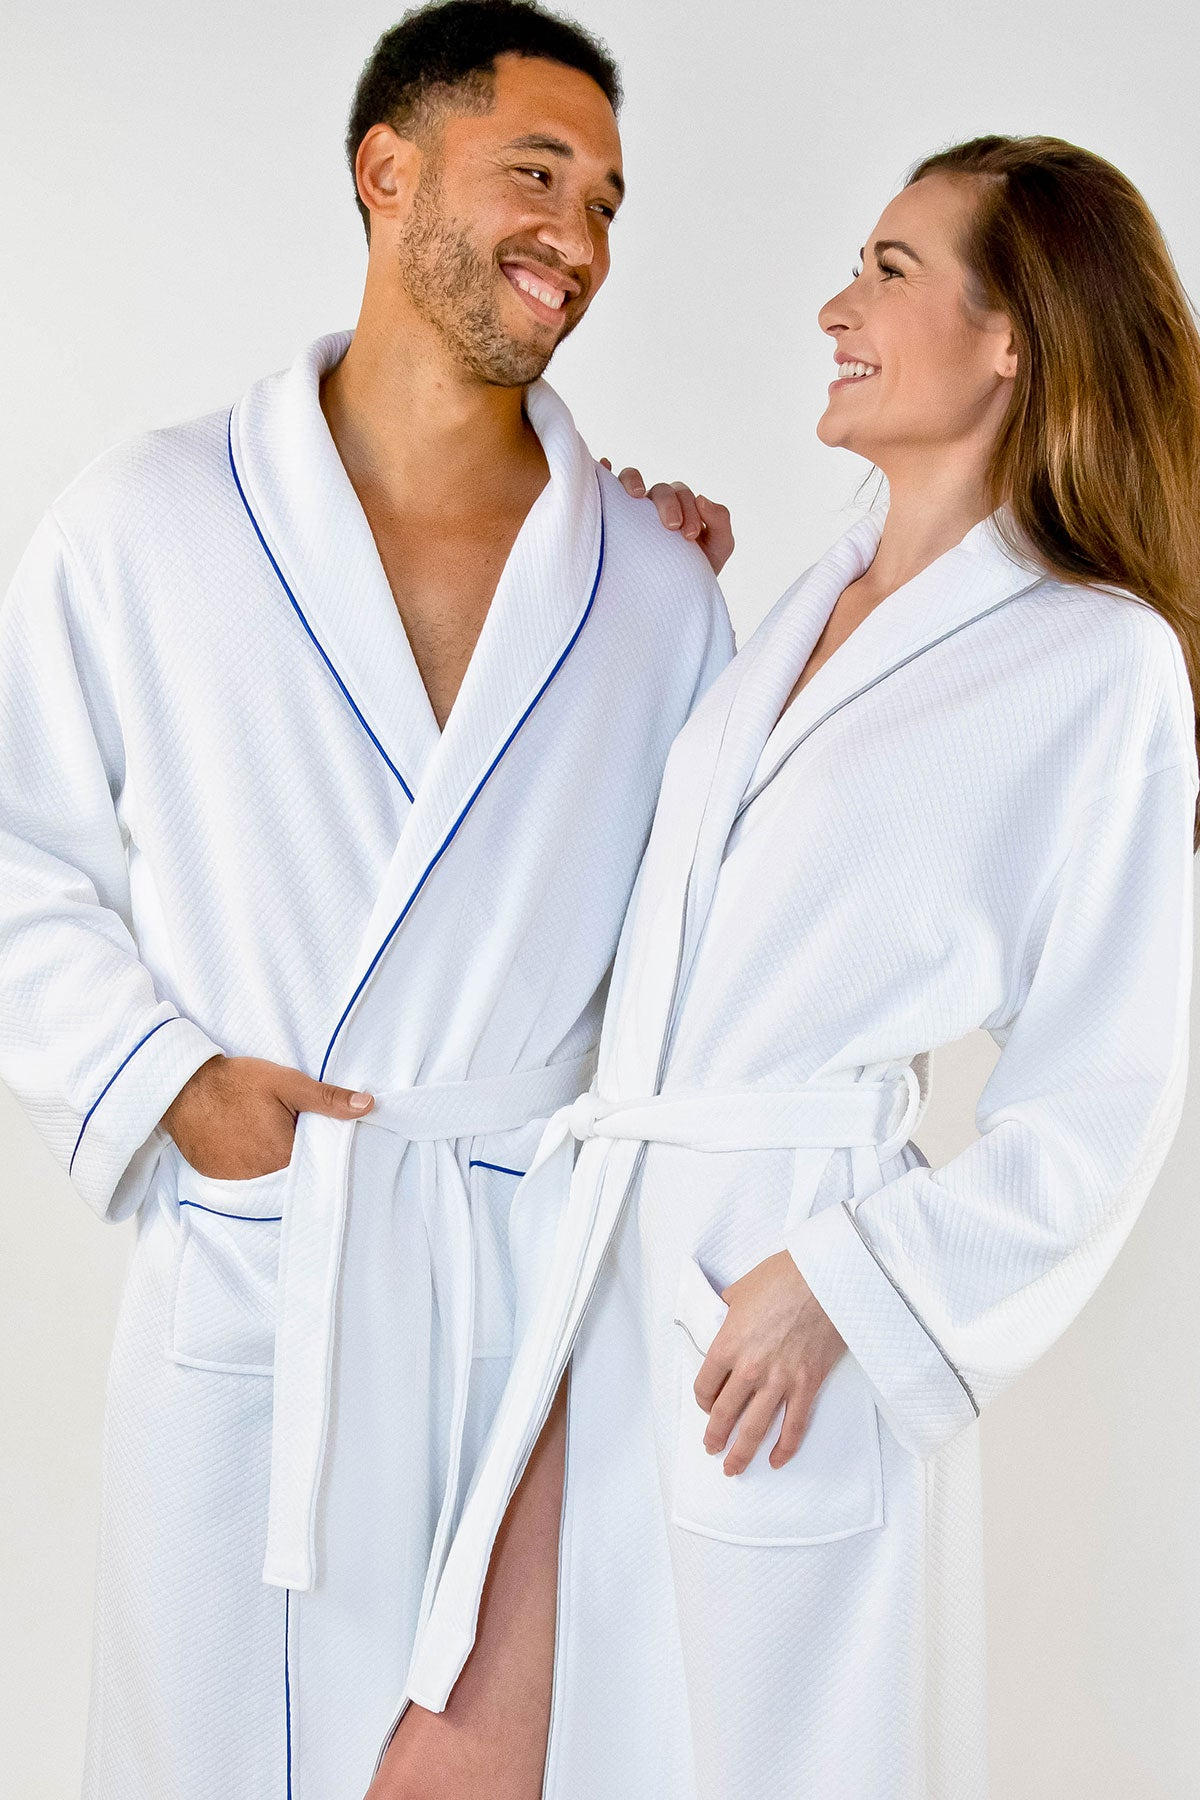 Grid Style Bath Robe White with Royal Blue Piping